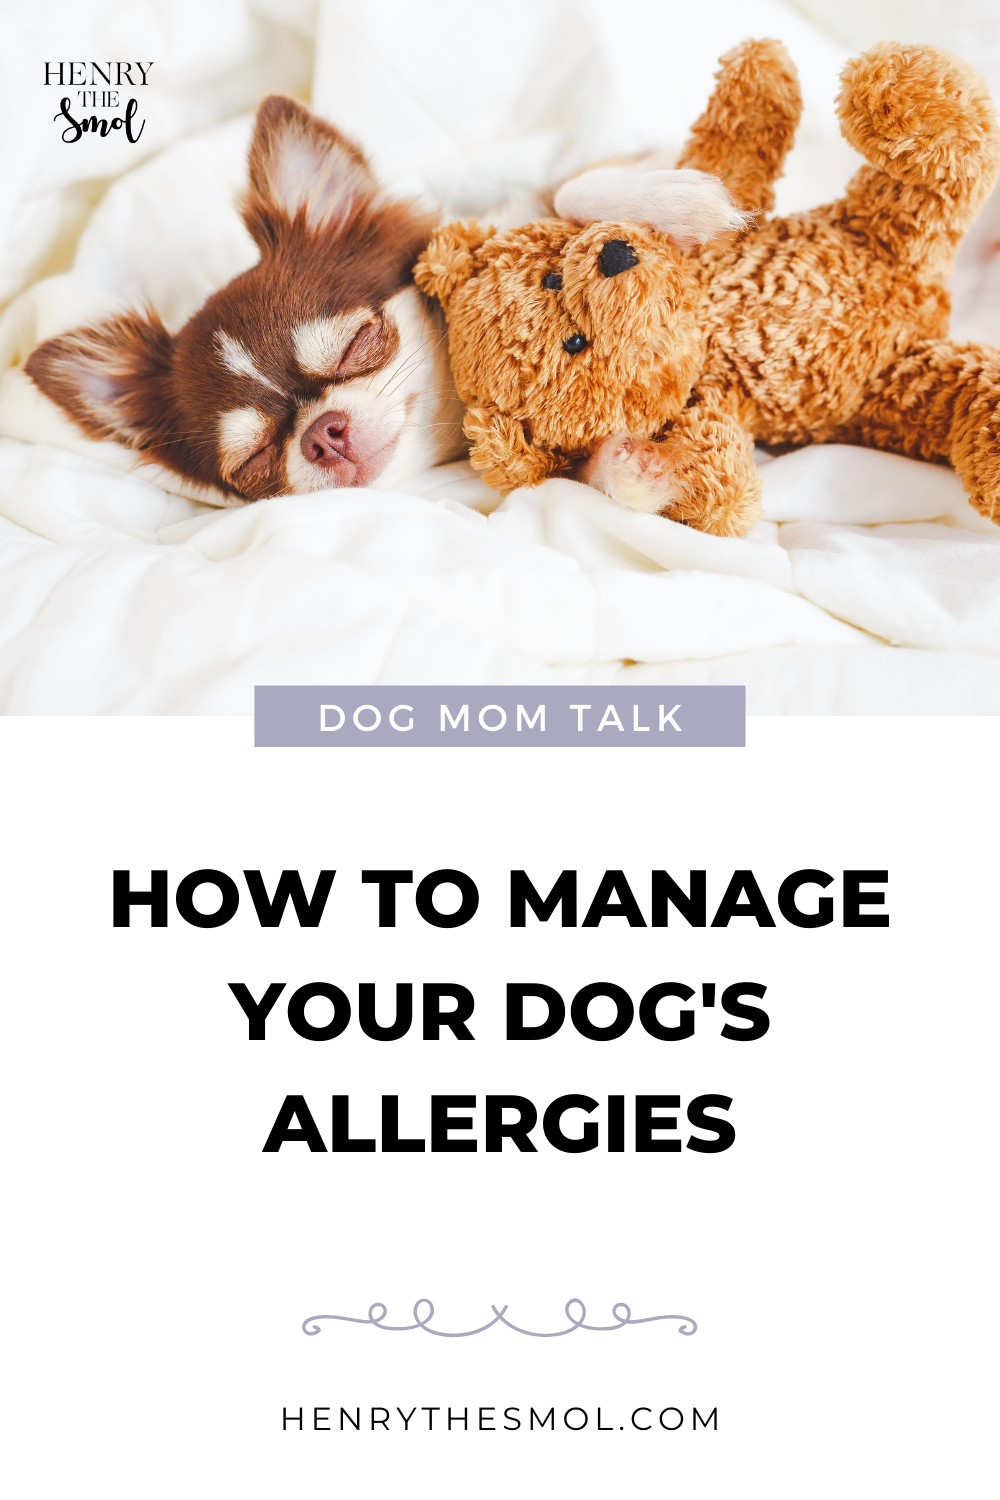 Dog Mom Talk: Dogs & Allergies with Shed Happens